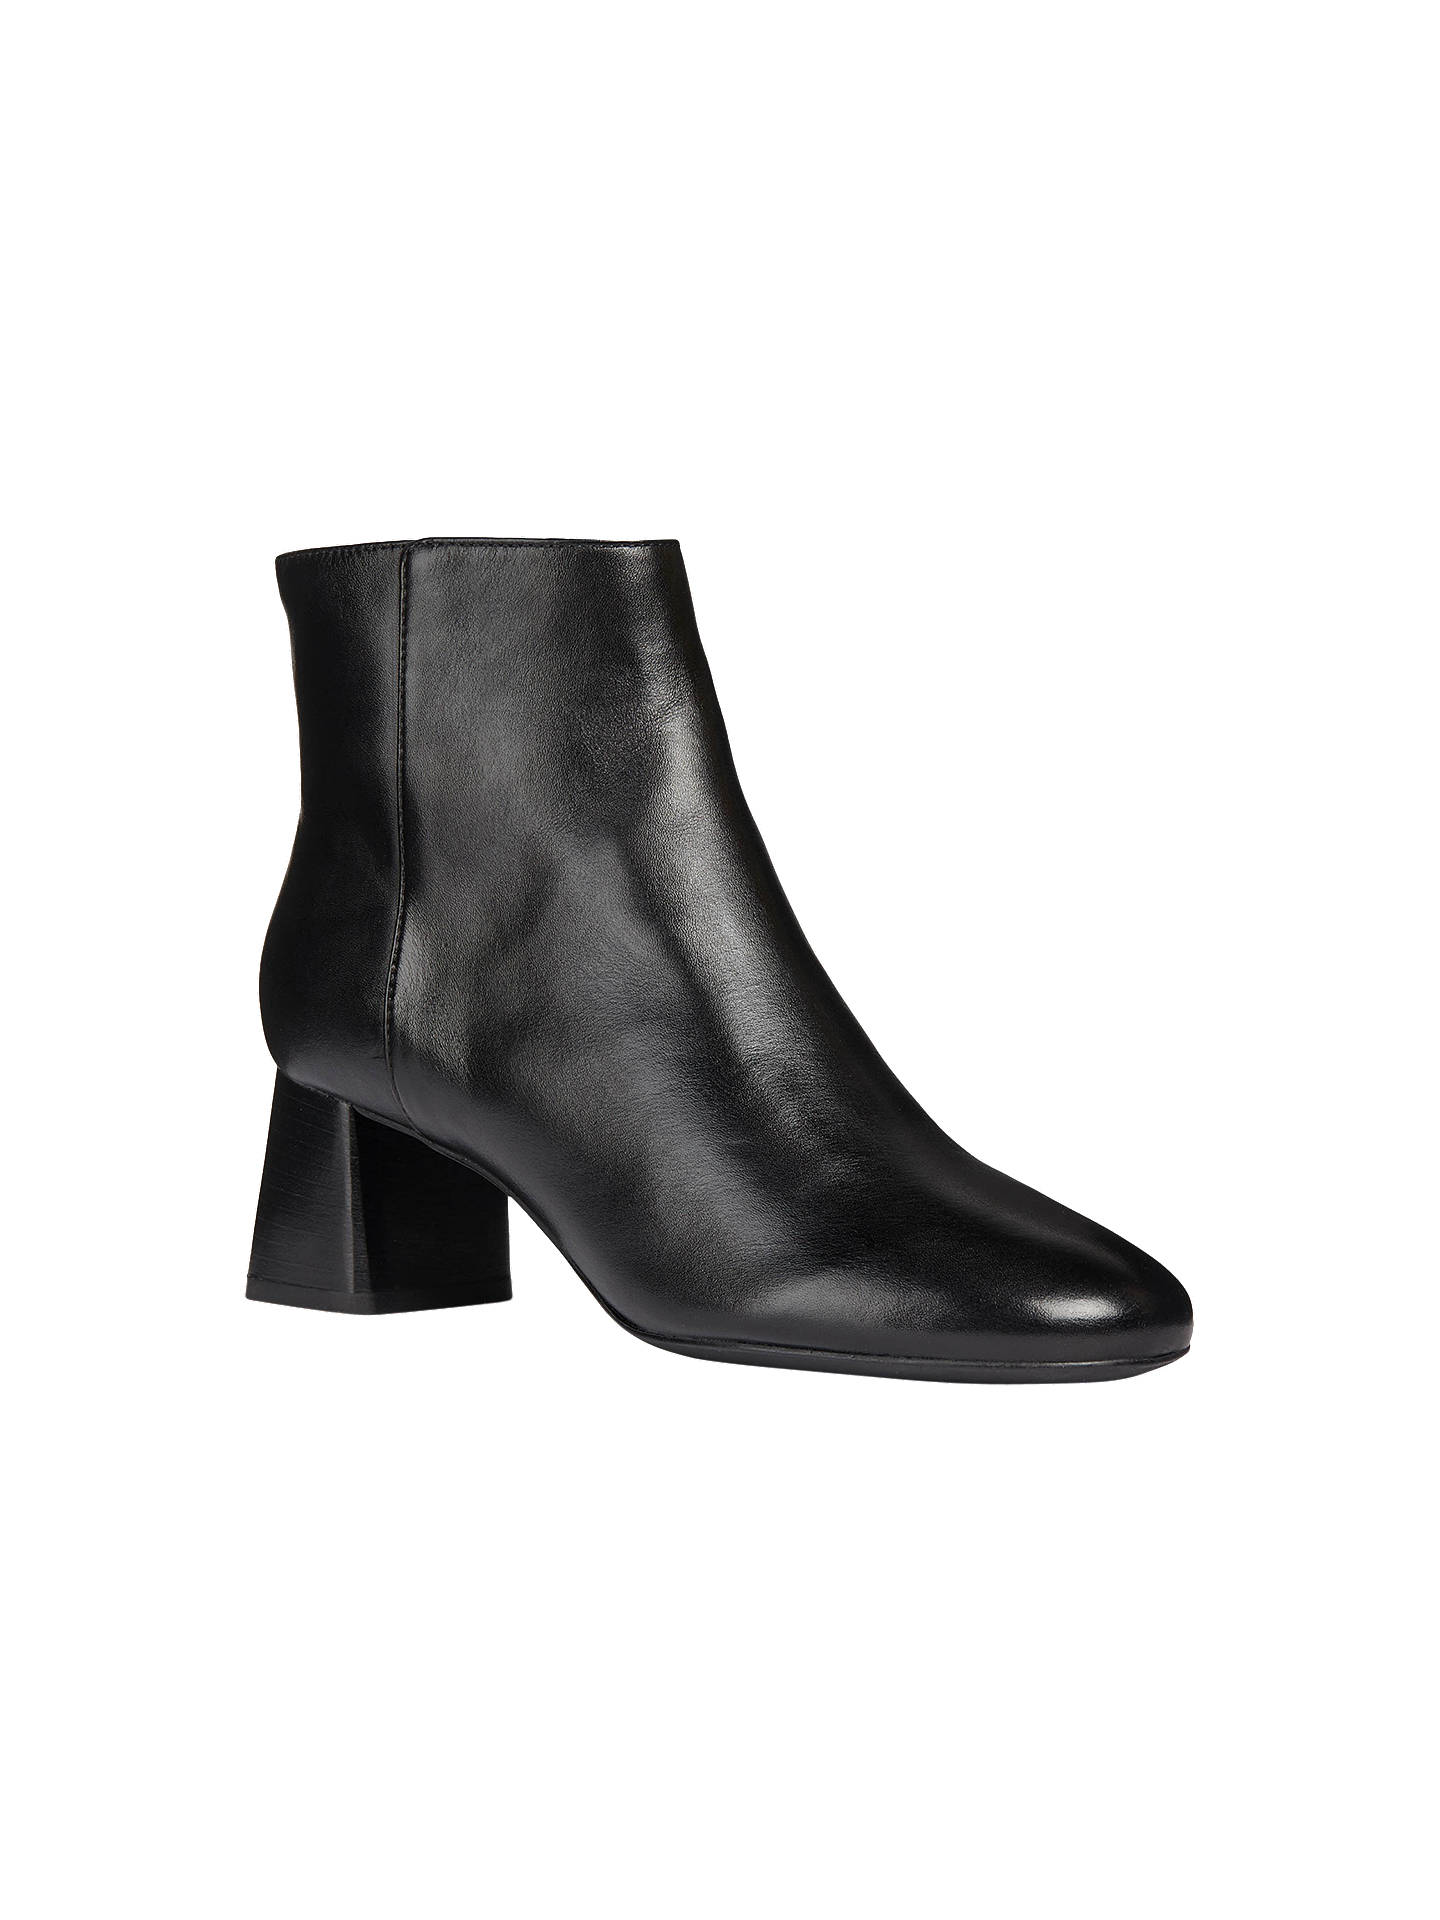 92a9e35ec0 ... Buy Geox Women's Seylise Mid Block Heel Ankle Boots, Black Leather, 4  Online at ...